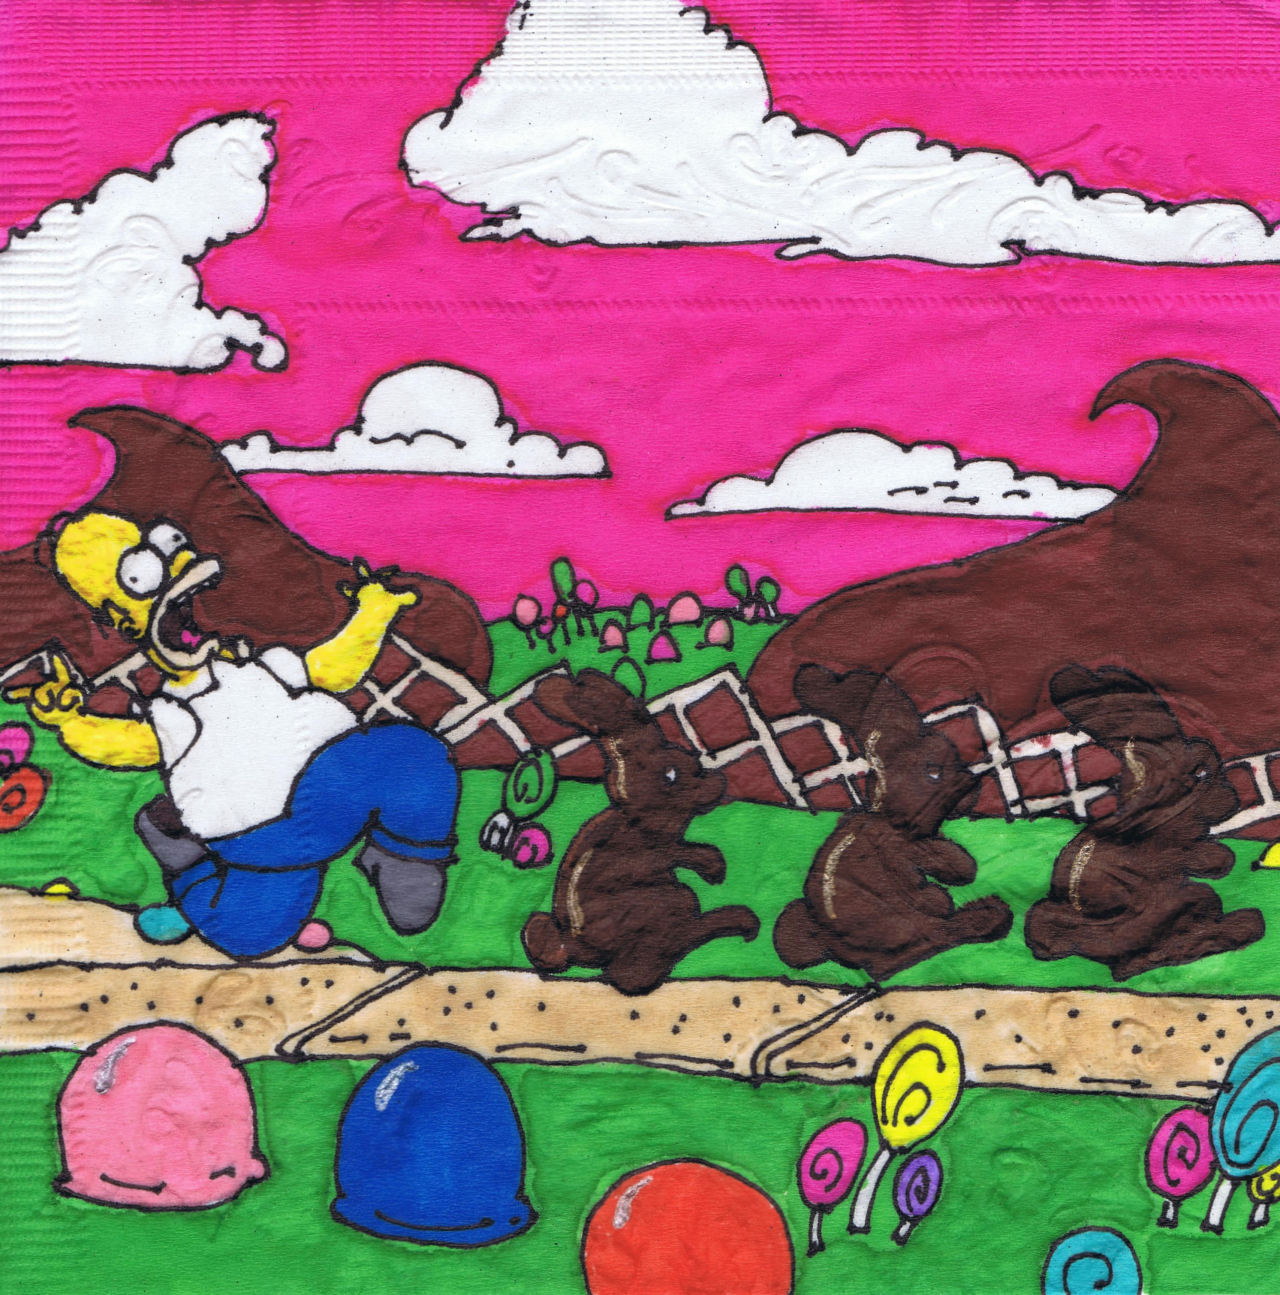 Happy Easter! Homer in Candyland.  New holiday napkin art, 2013.